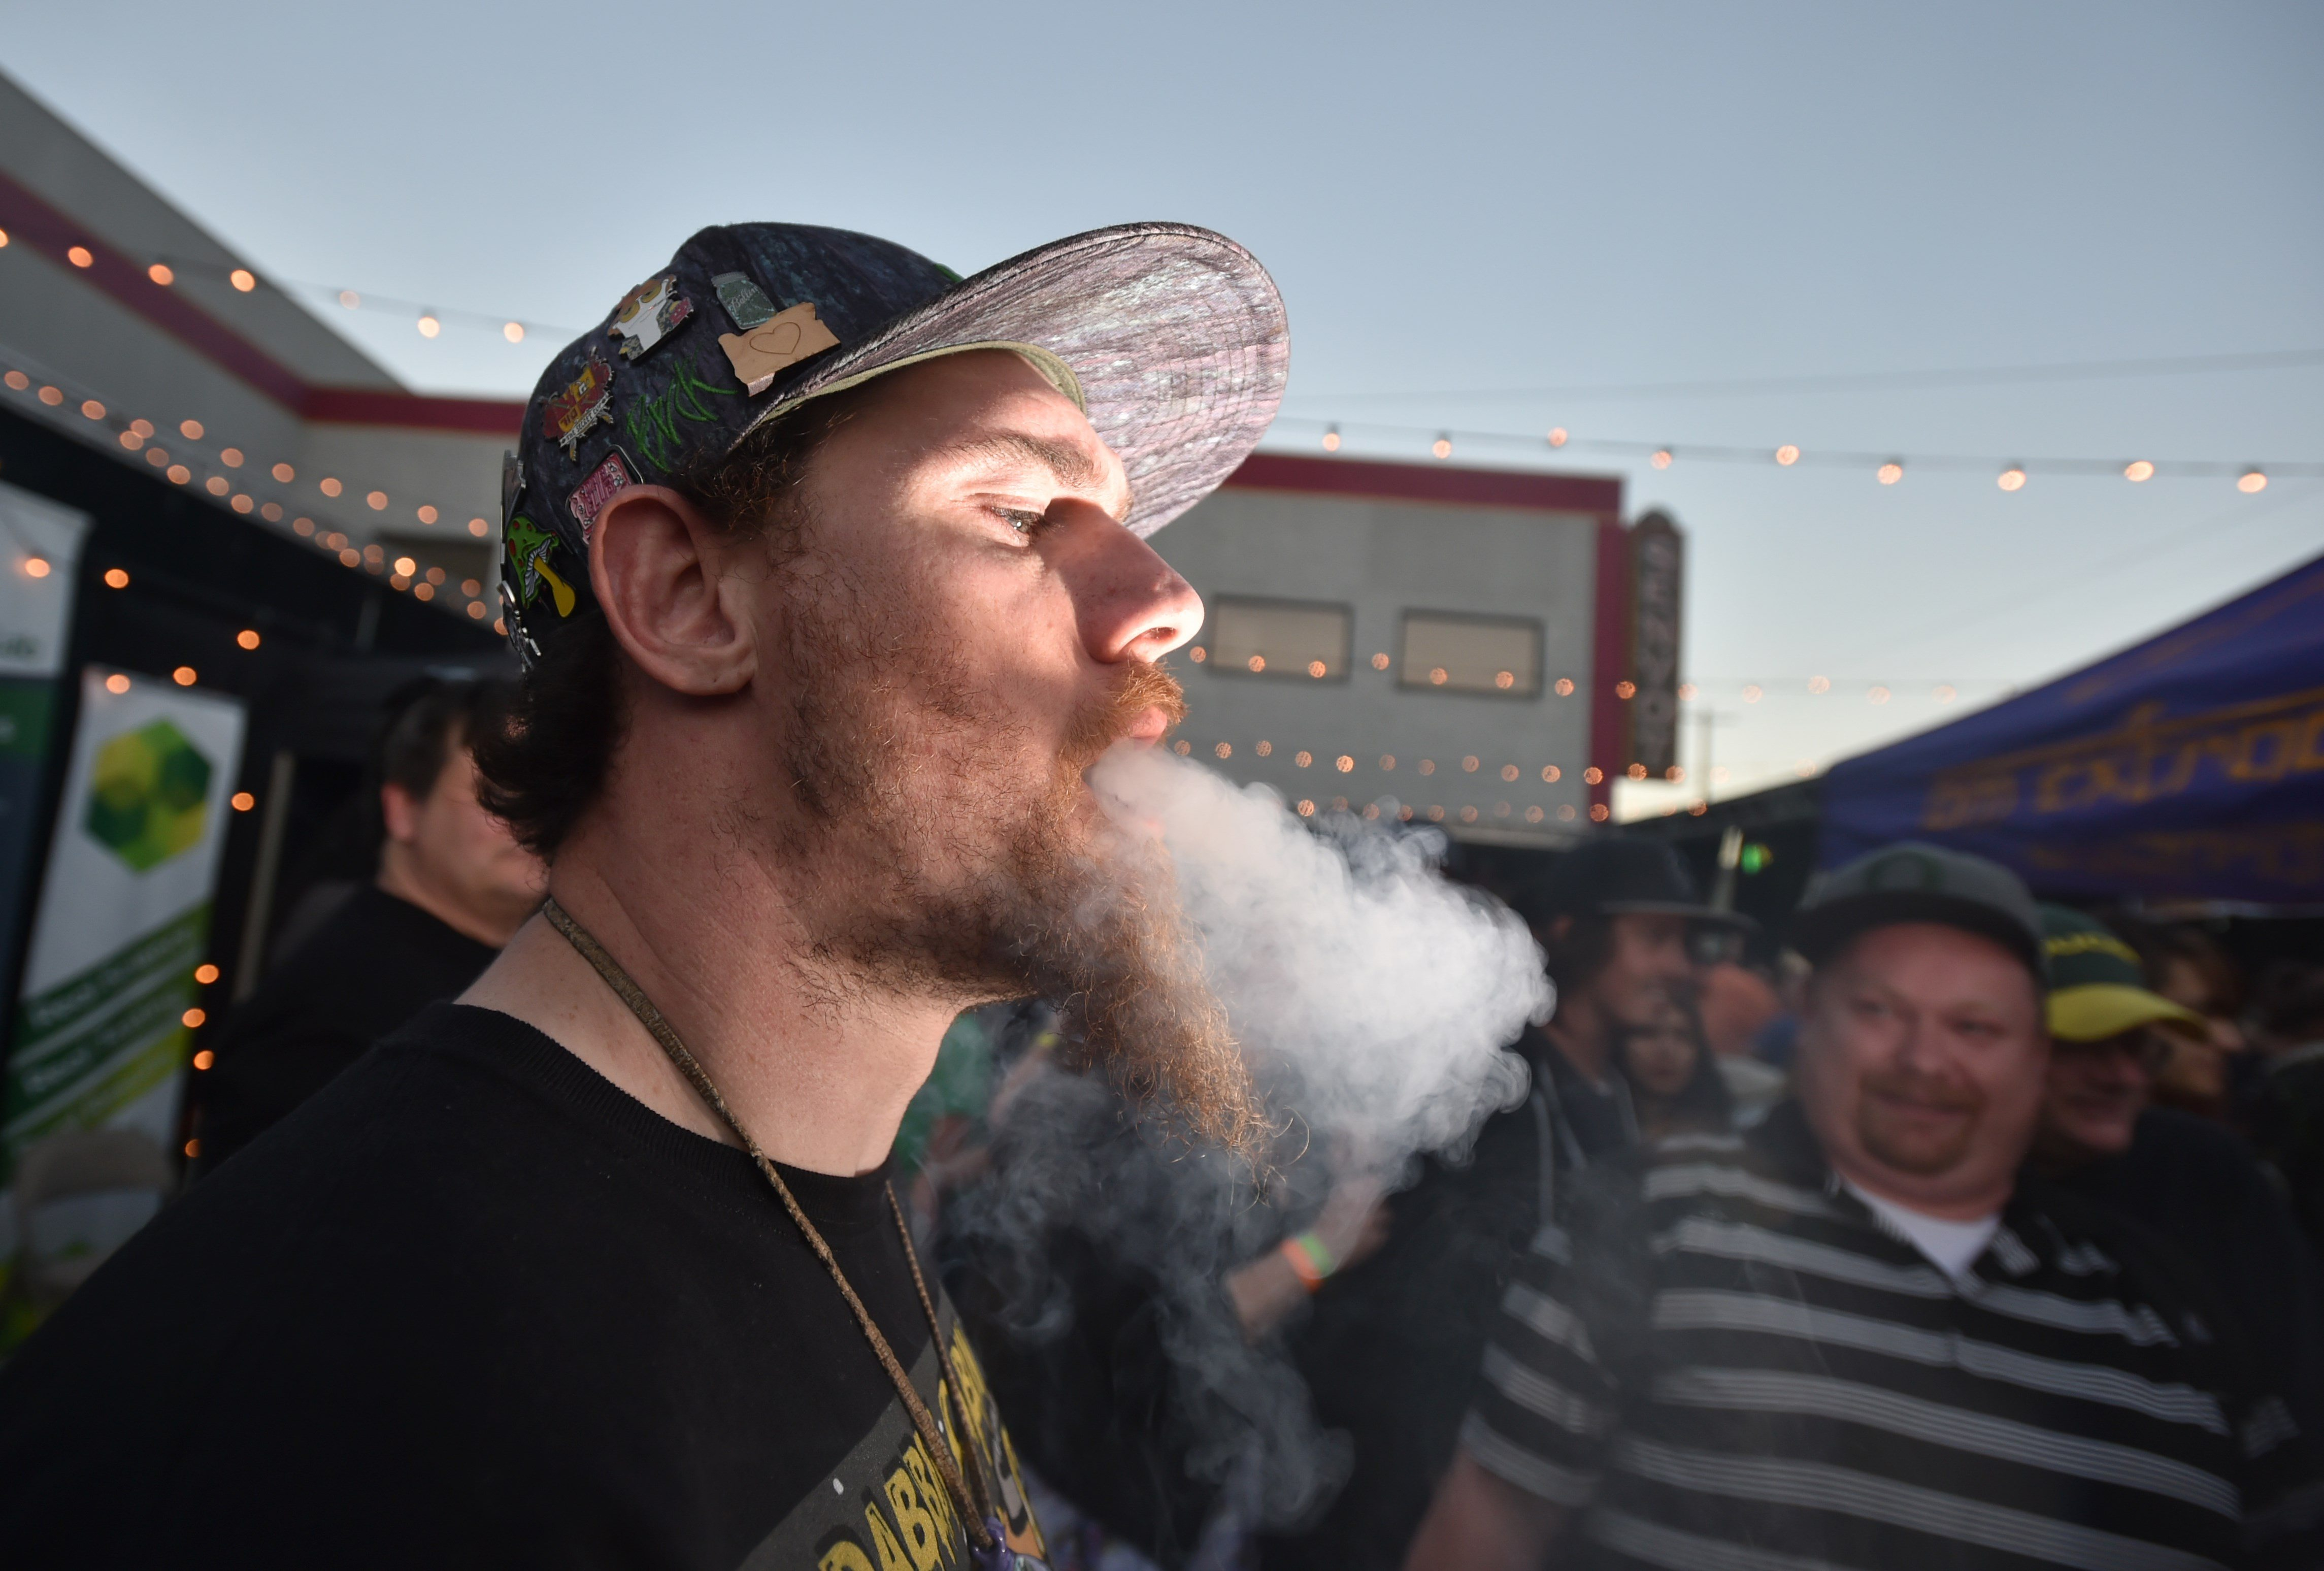 A man smokes marijuana at a cannabis competition in Portland, Oregon.